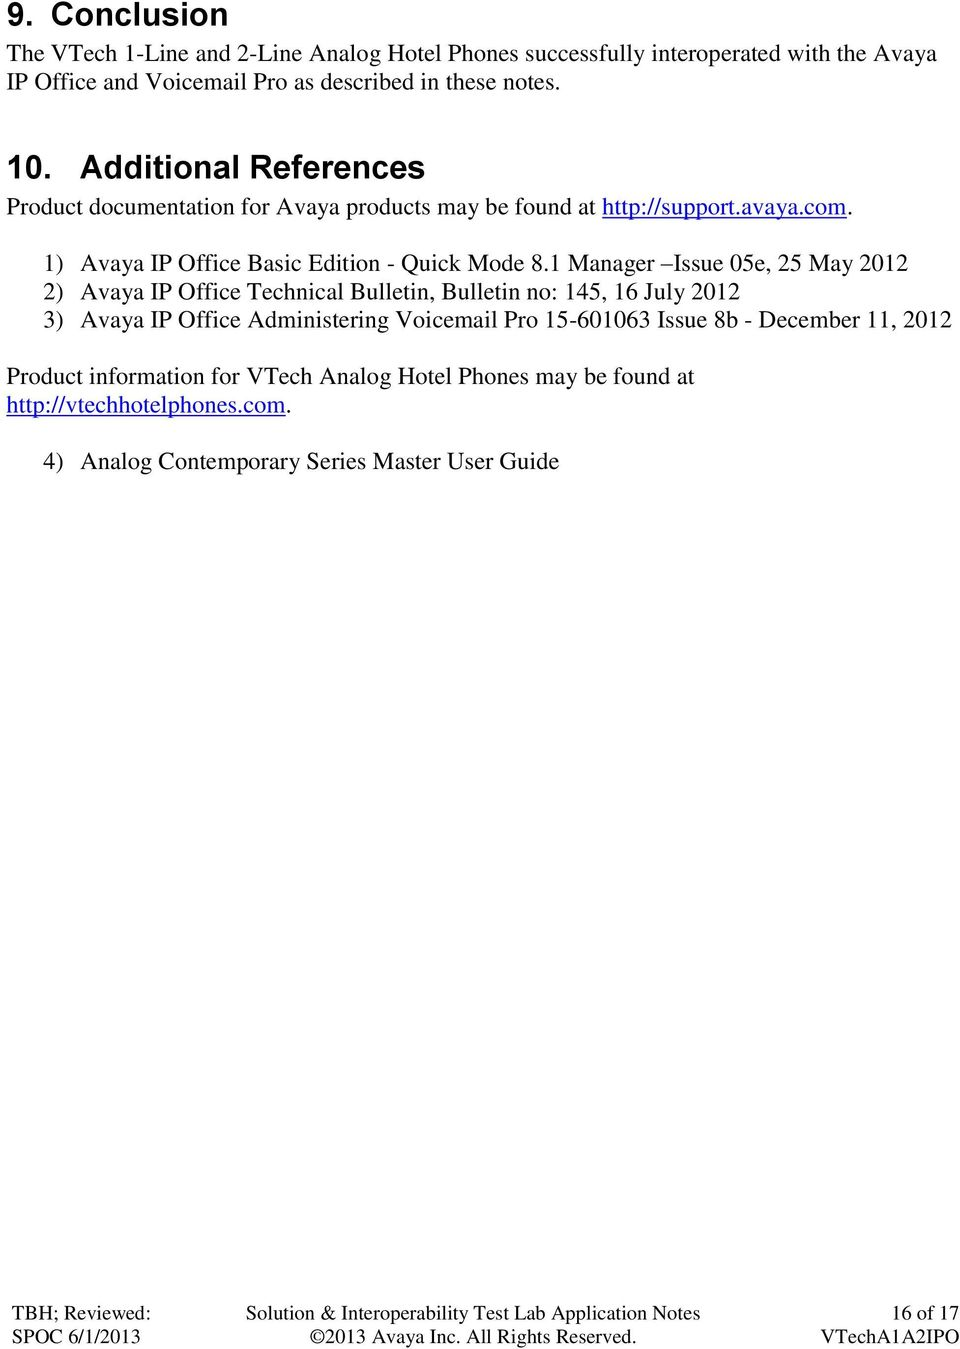 1 Manager Issue 05e, 25 May 2012 2) Avaya IP Office Technical Bulletin, Bulletin no: 145, 16 July 2012 3) Avaya IP Office Administering Voicemail Pro 15-601063